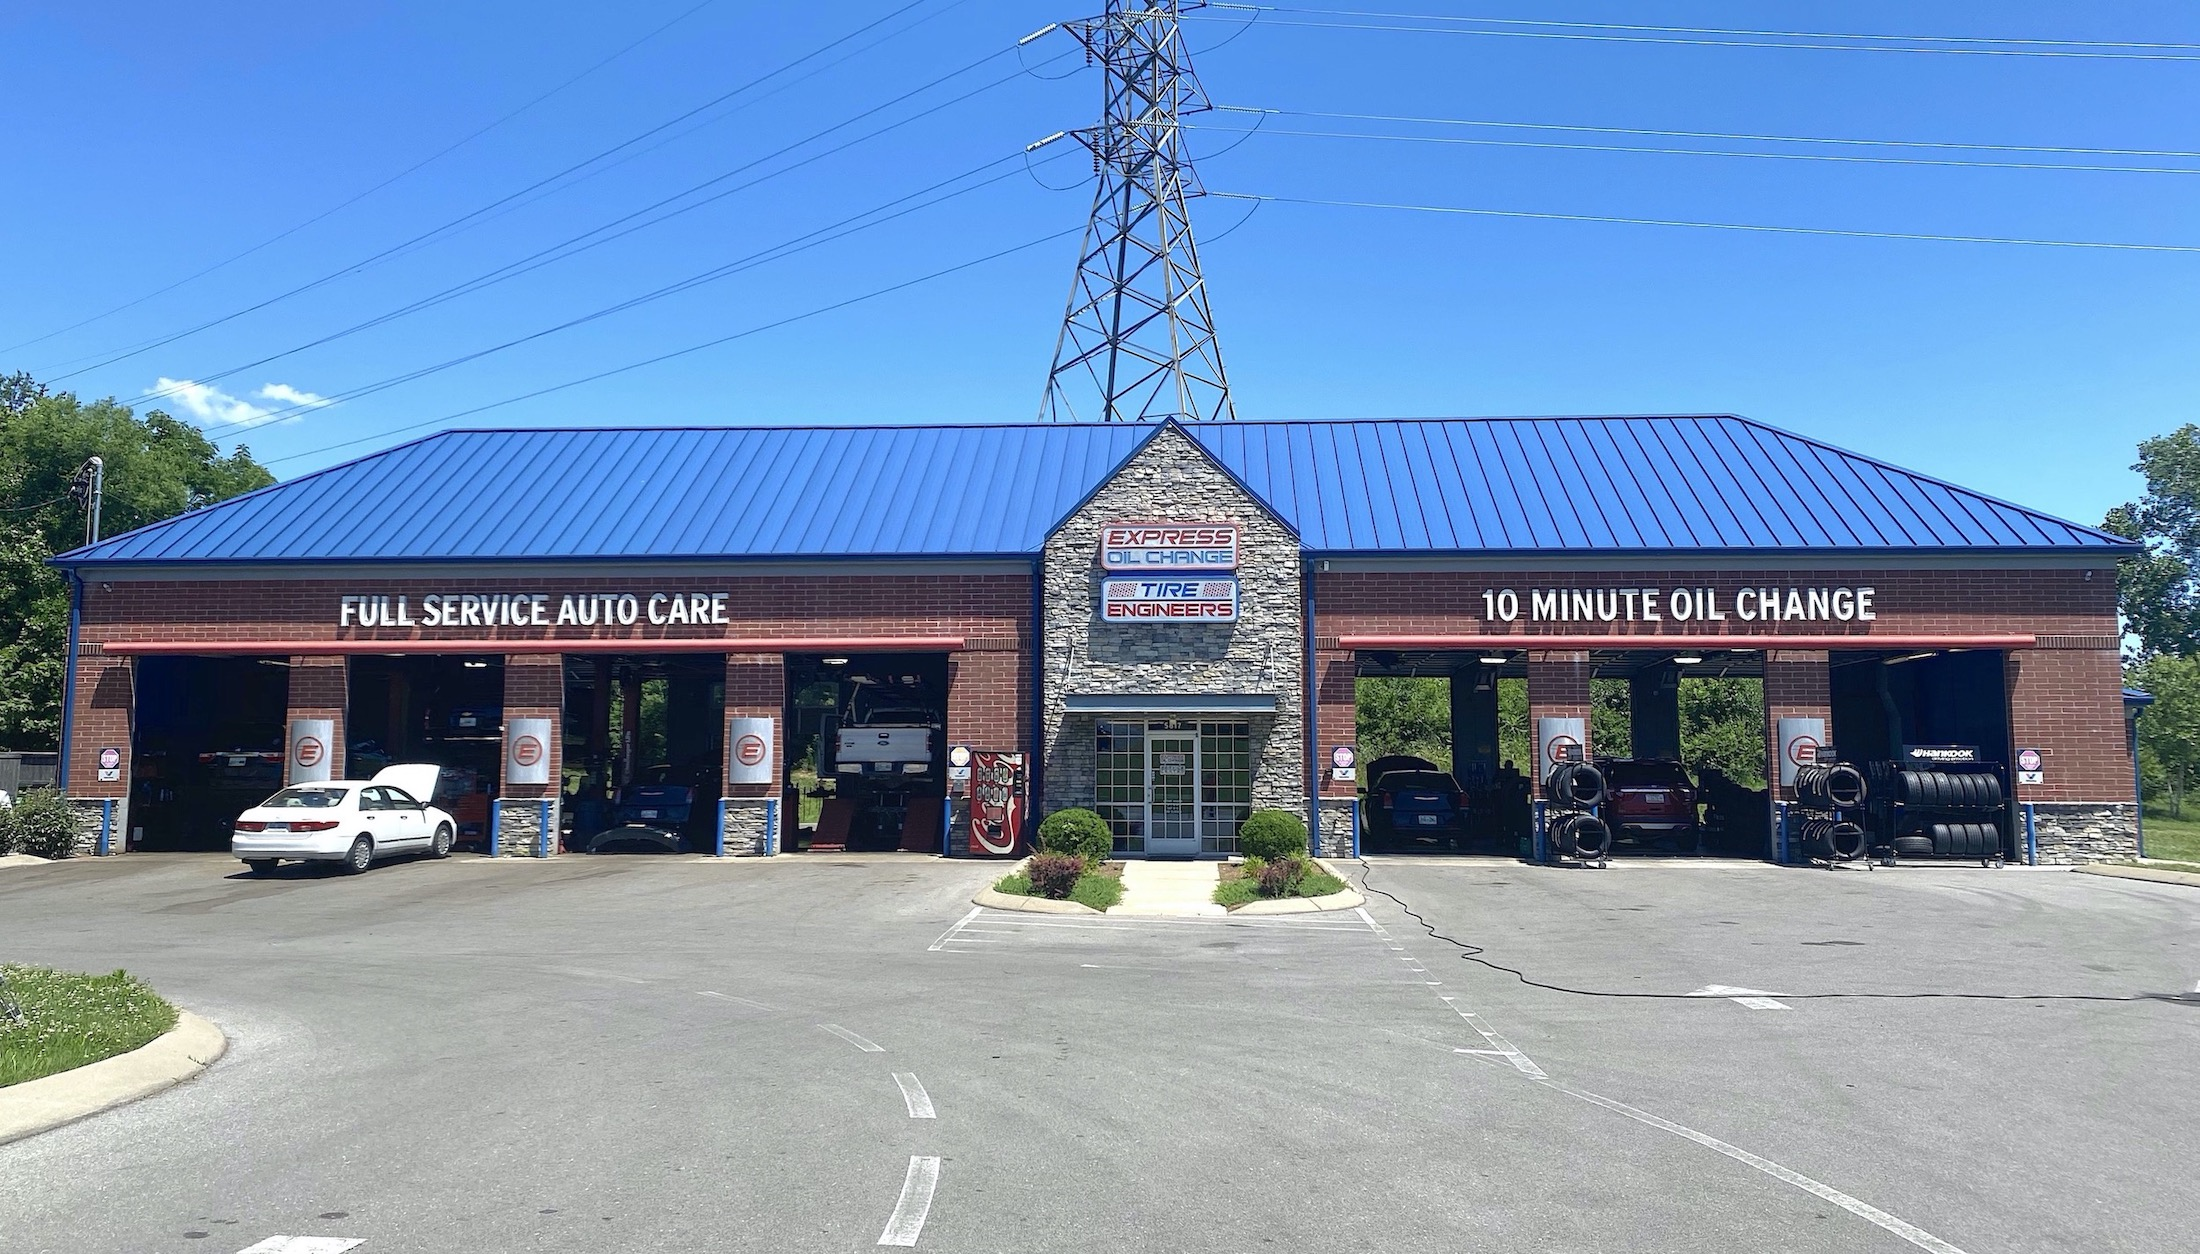 Express Oil Change & Tire Engineers Nashville, TN - Nolensville Pike store